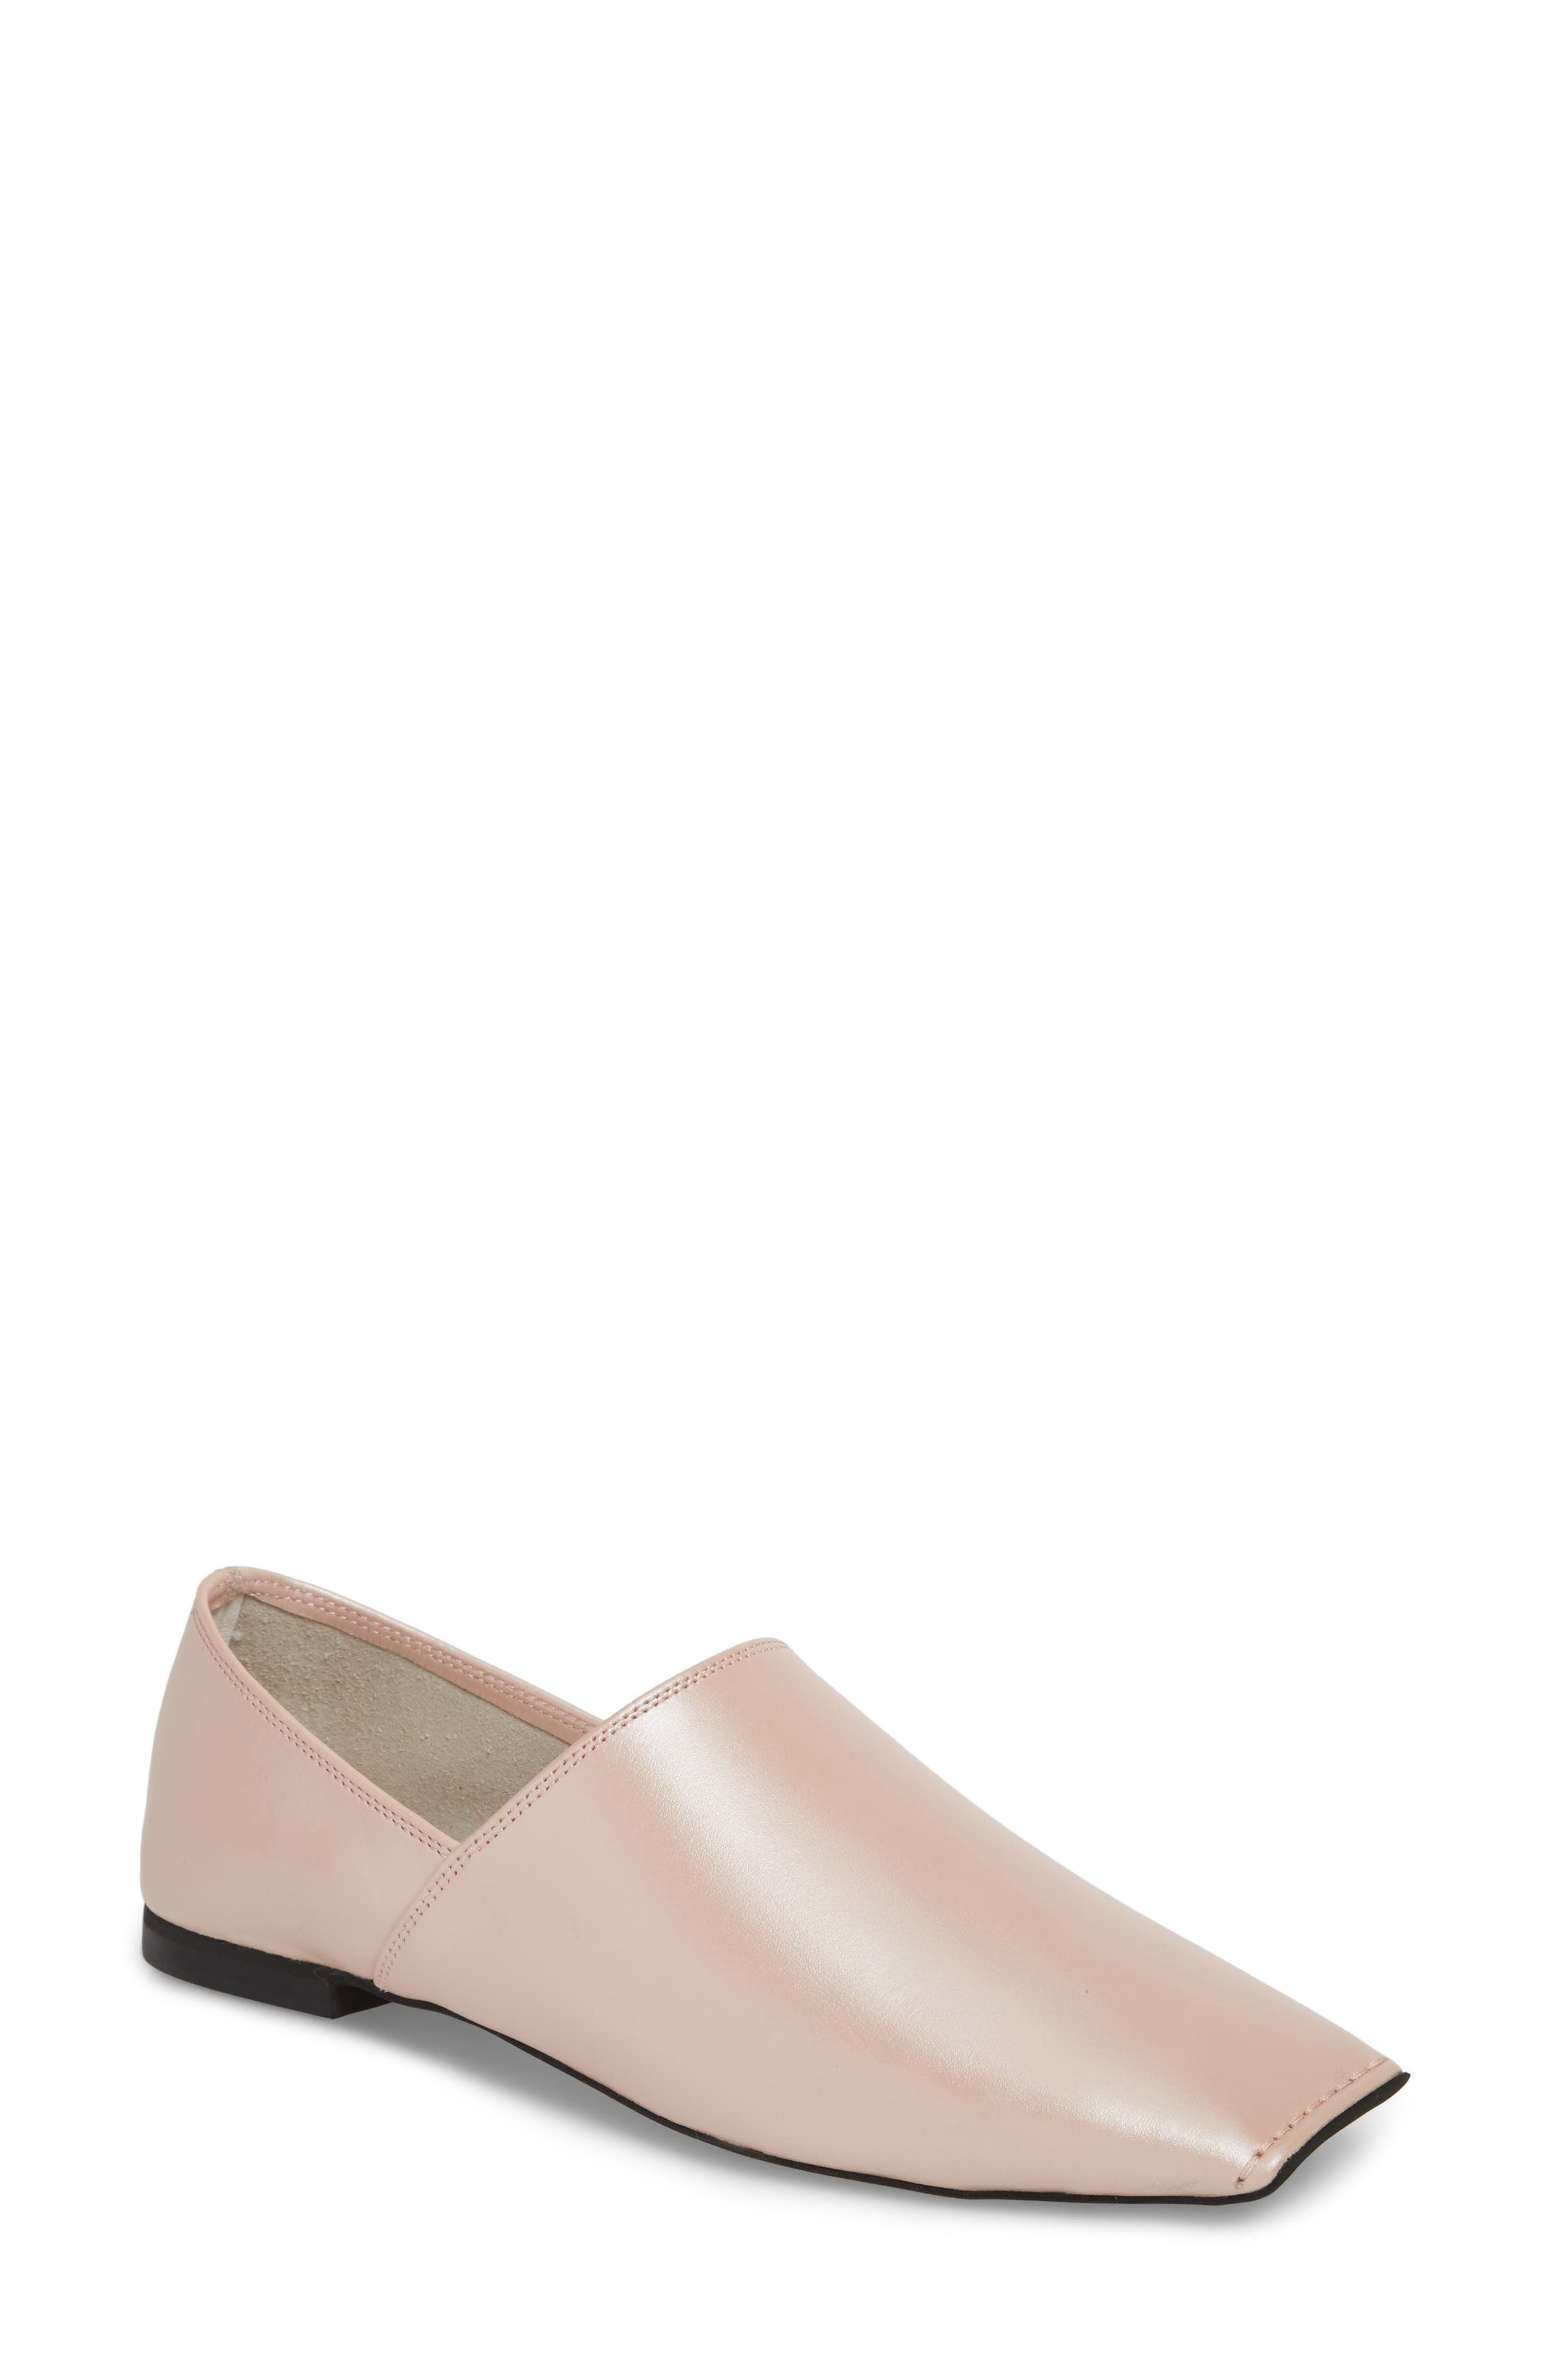 Lanvale Blunted Toe Flat,                             Main thumbnail 1, color,                             PINK LUSTER